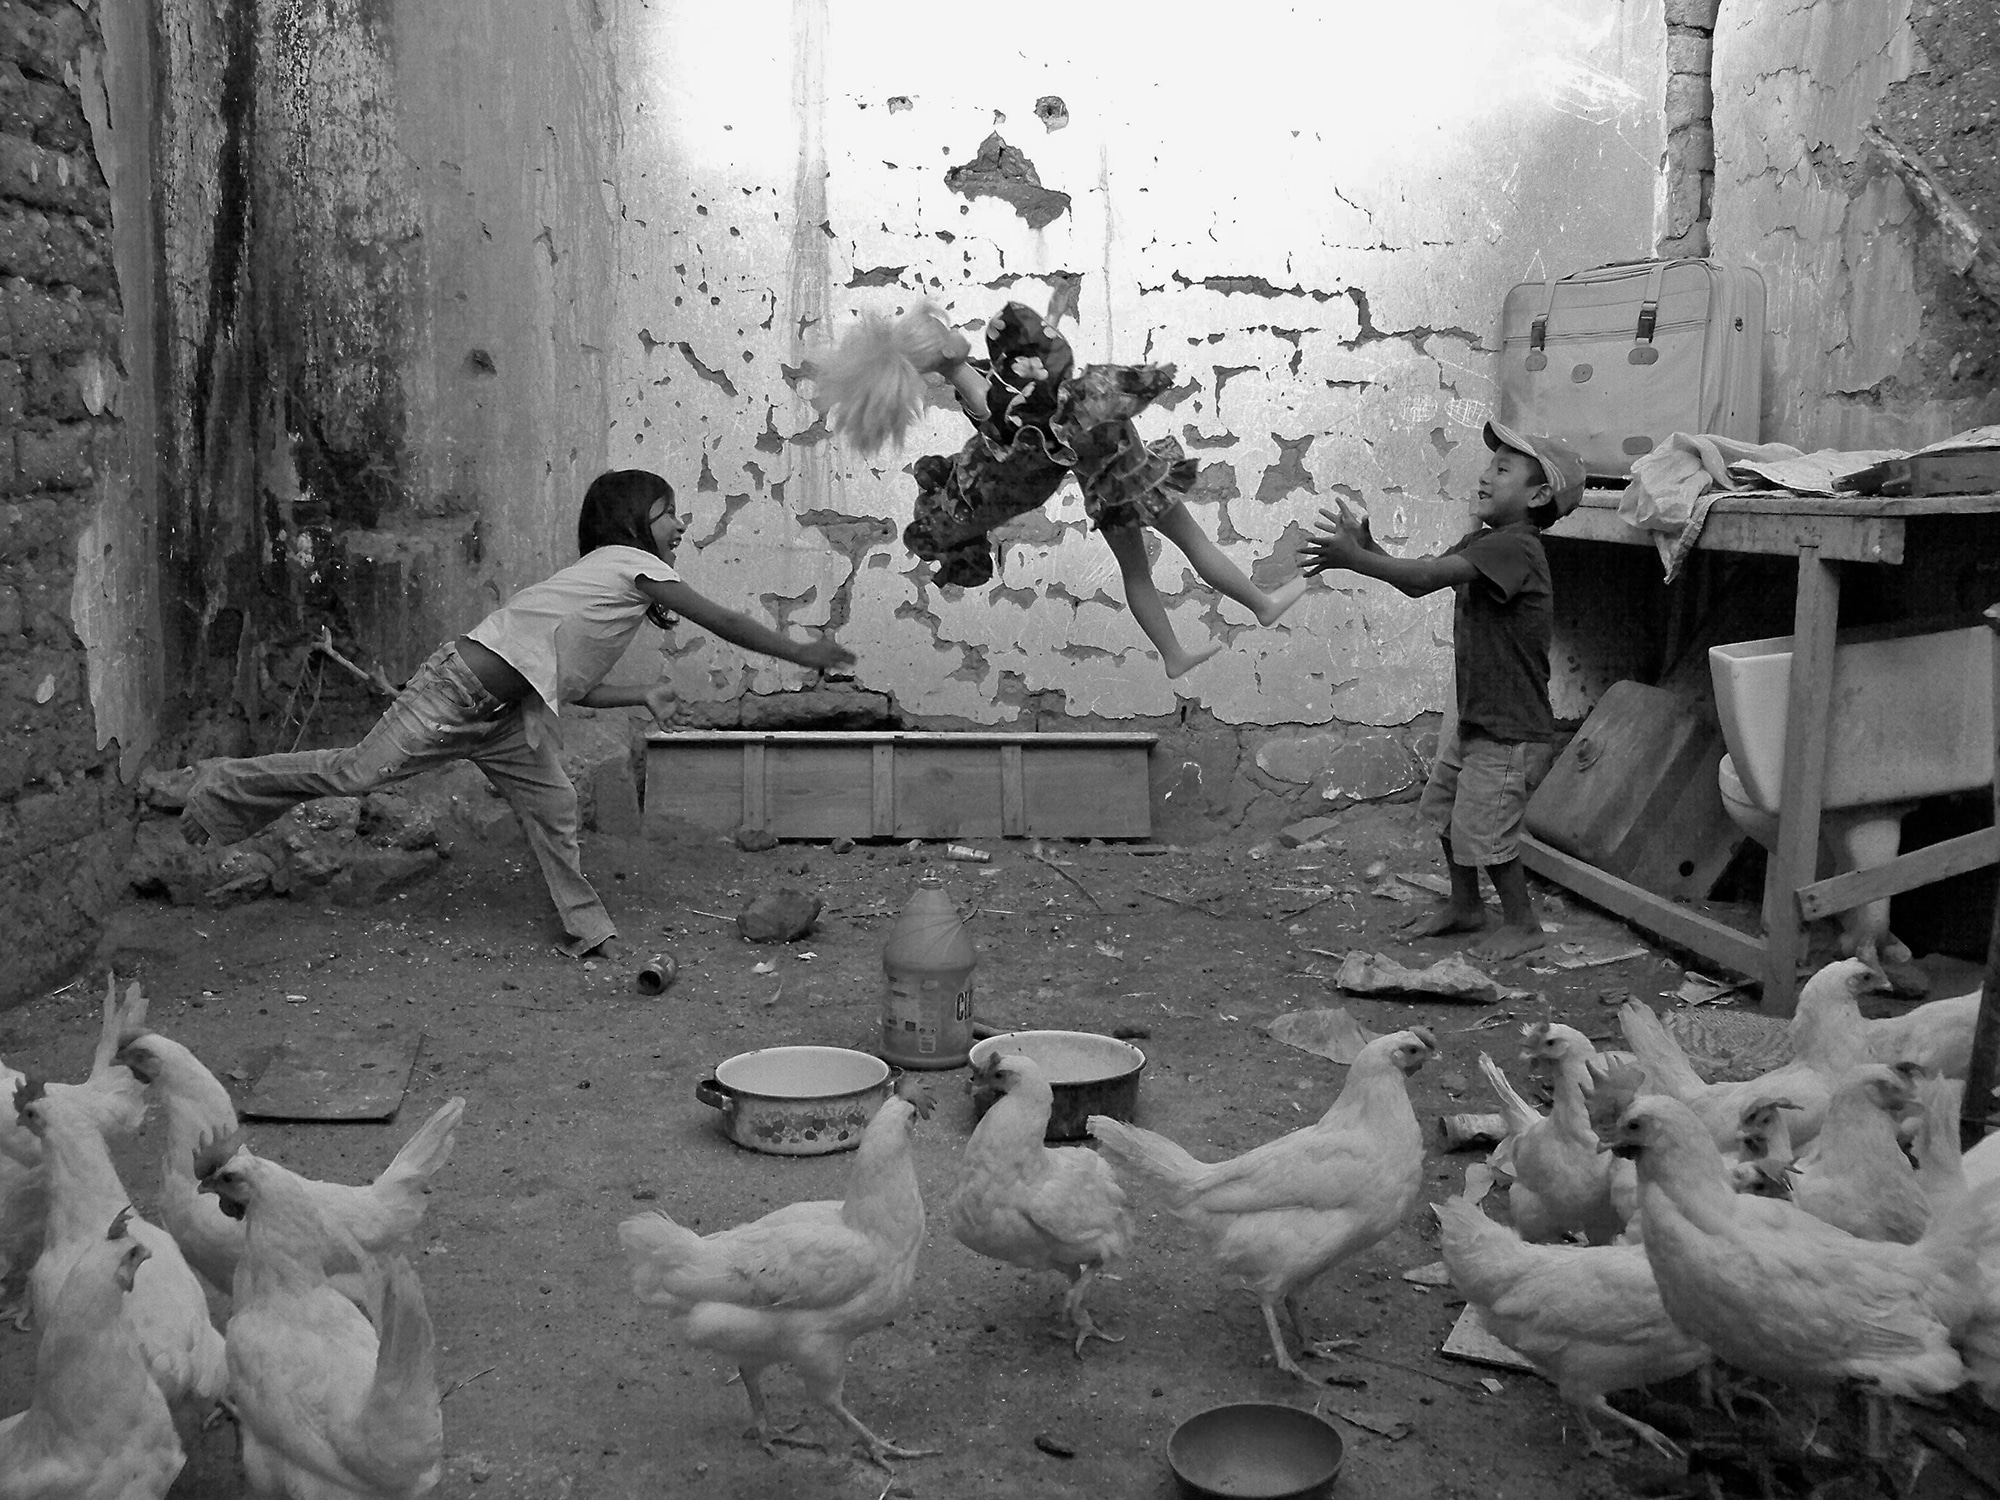 Joel Orozco, Beyond the Mask: Children inside a chicken coop, throwing doll in the air